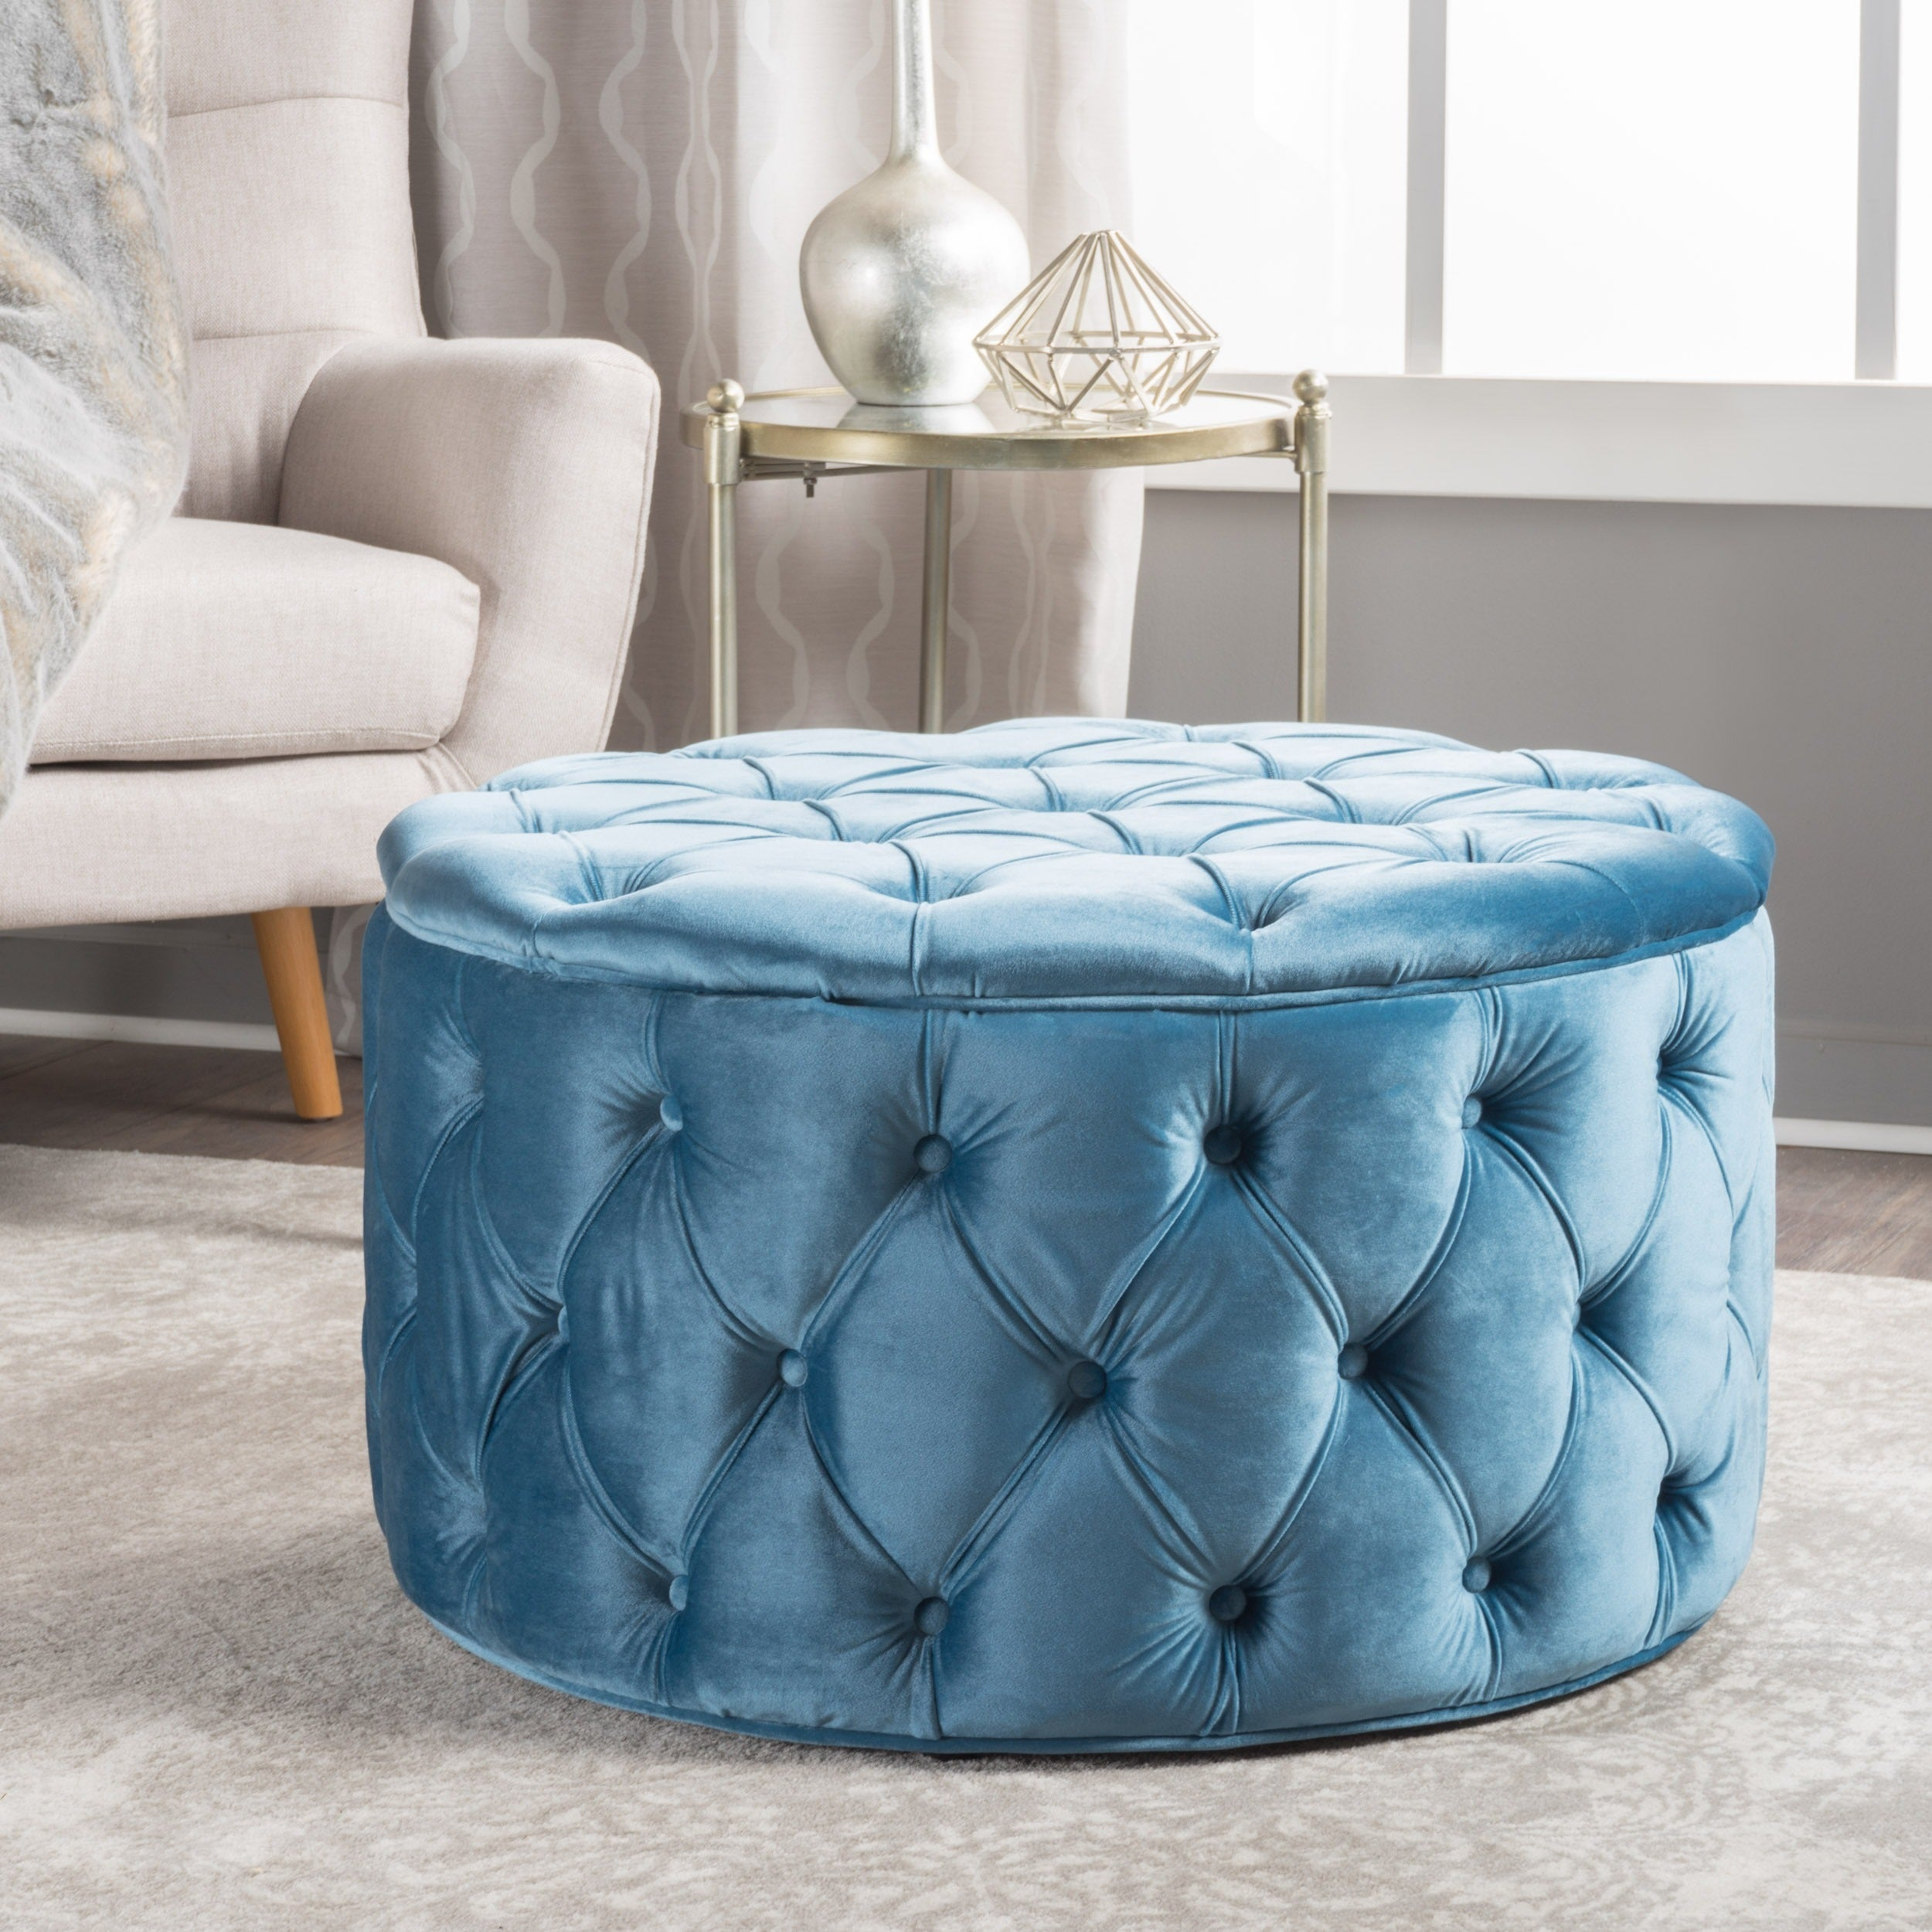 Zelfa Round Tufted Velvet Ottoman By Christopher Knight Home On Free Shipping Today 14053761